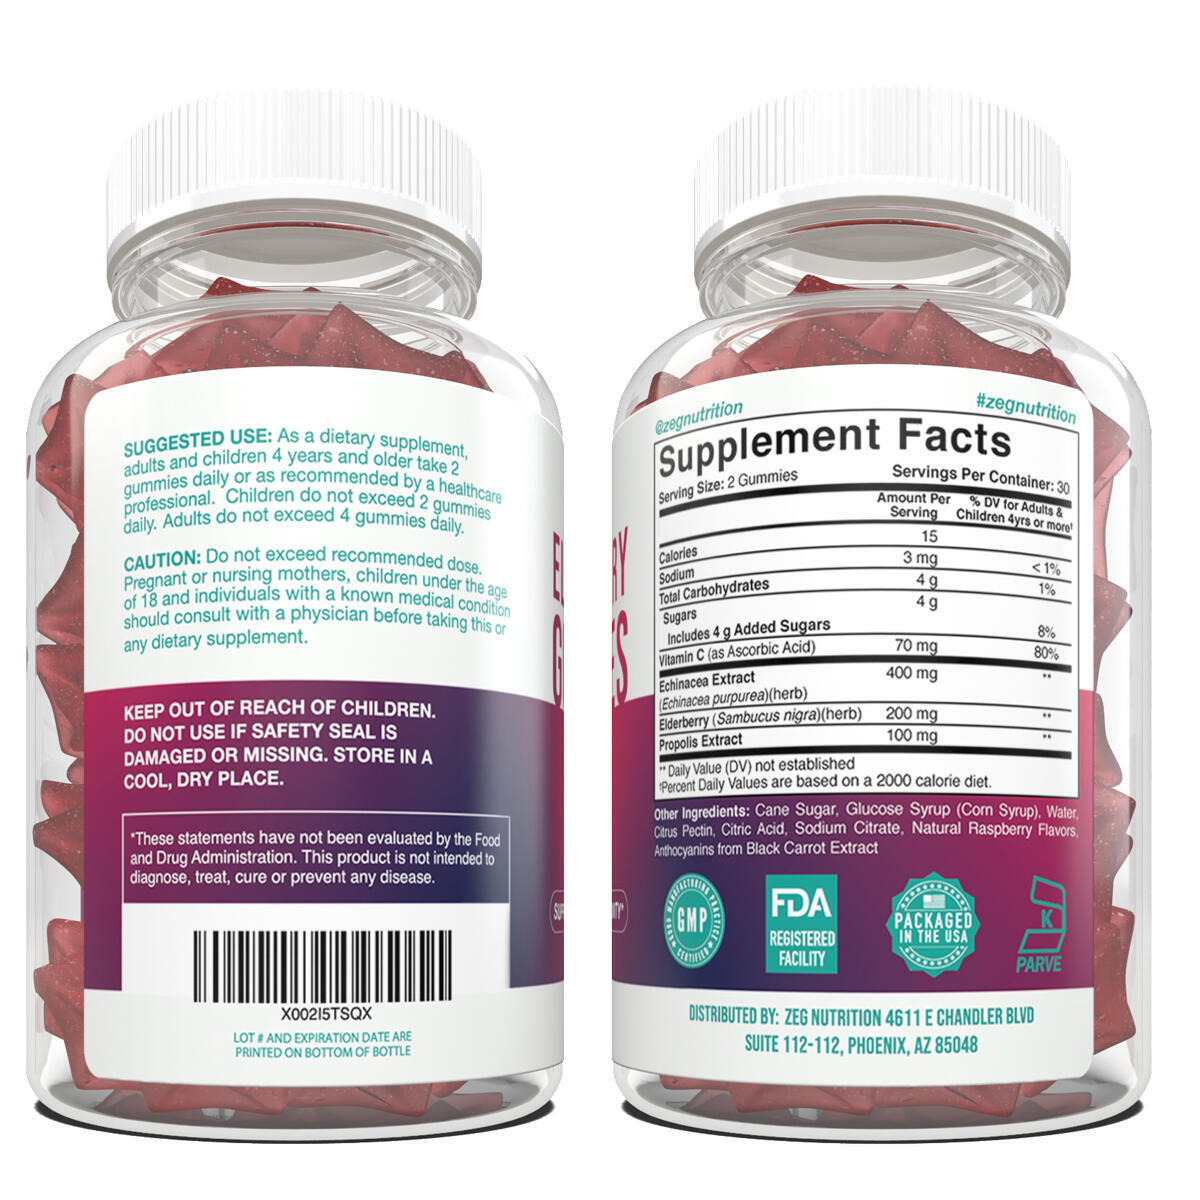 Elderberry Gummies for Adults and Kids - Immune Support Gummies - Black Elderberry - Immune Supplement with Vitamins and Herbs - 60 Gummies